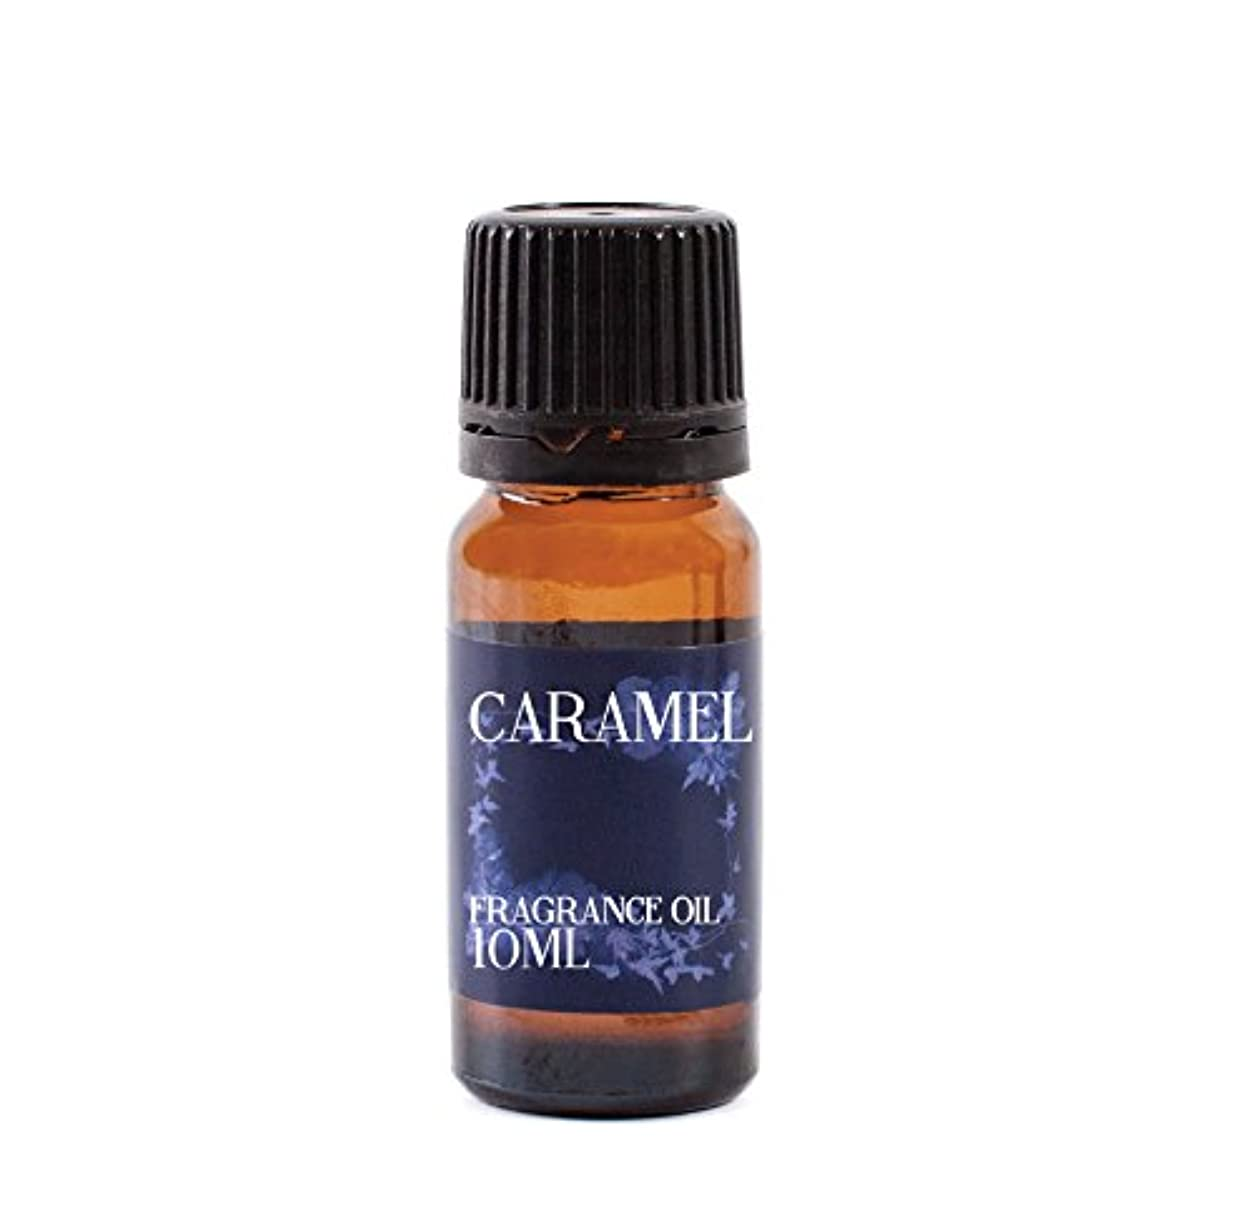 バイオレットパウダータクシーMystic Moments | Caramel Fragrance Oil - 10ml